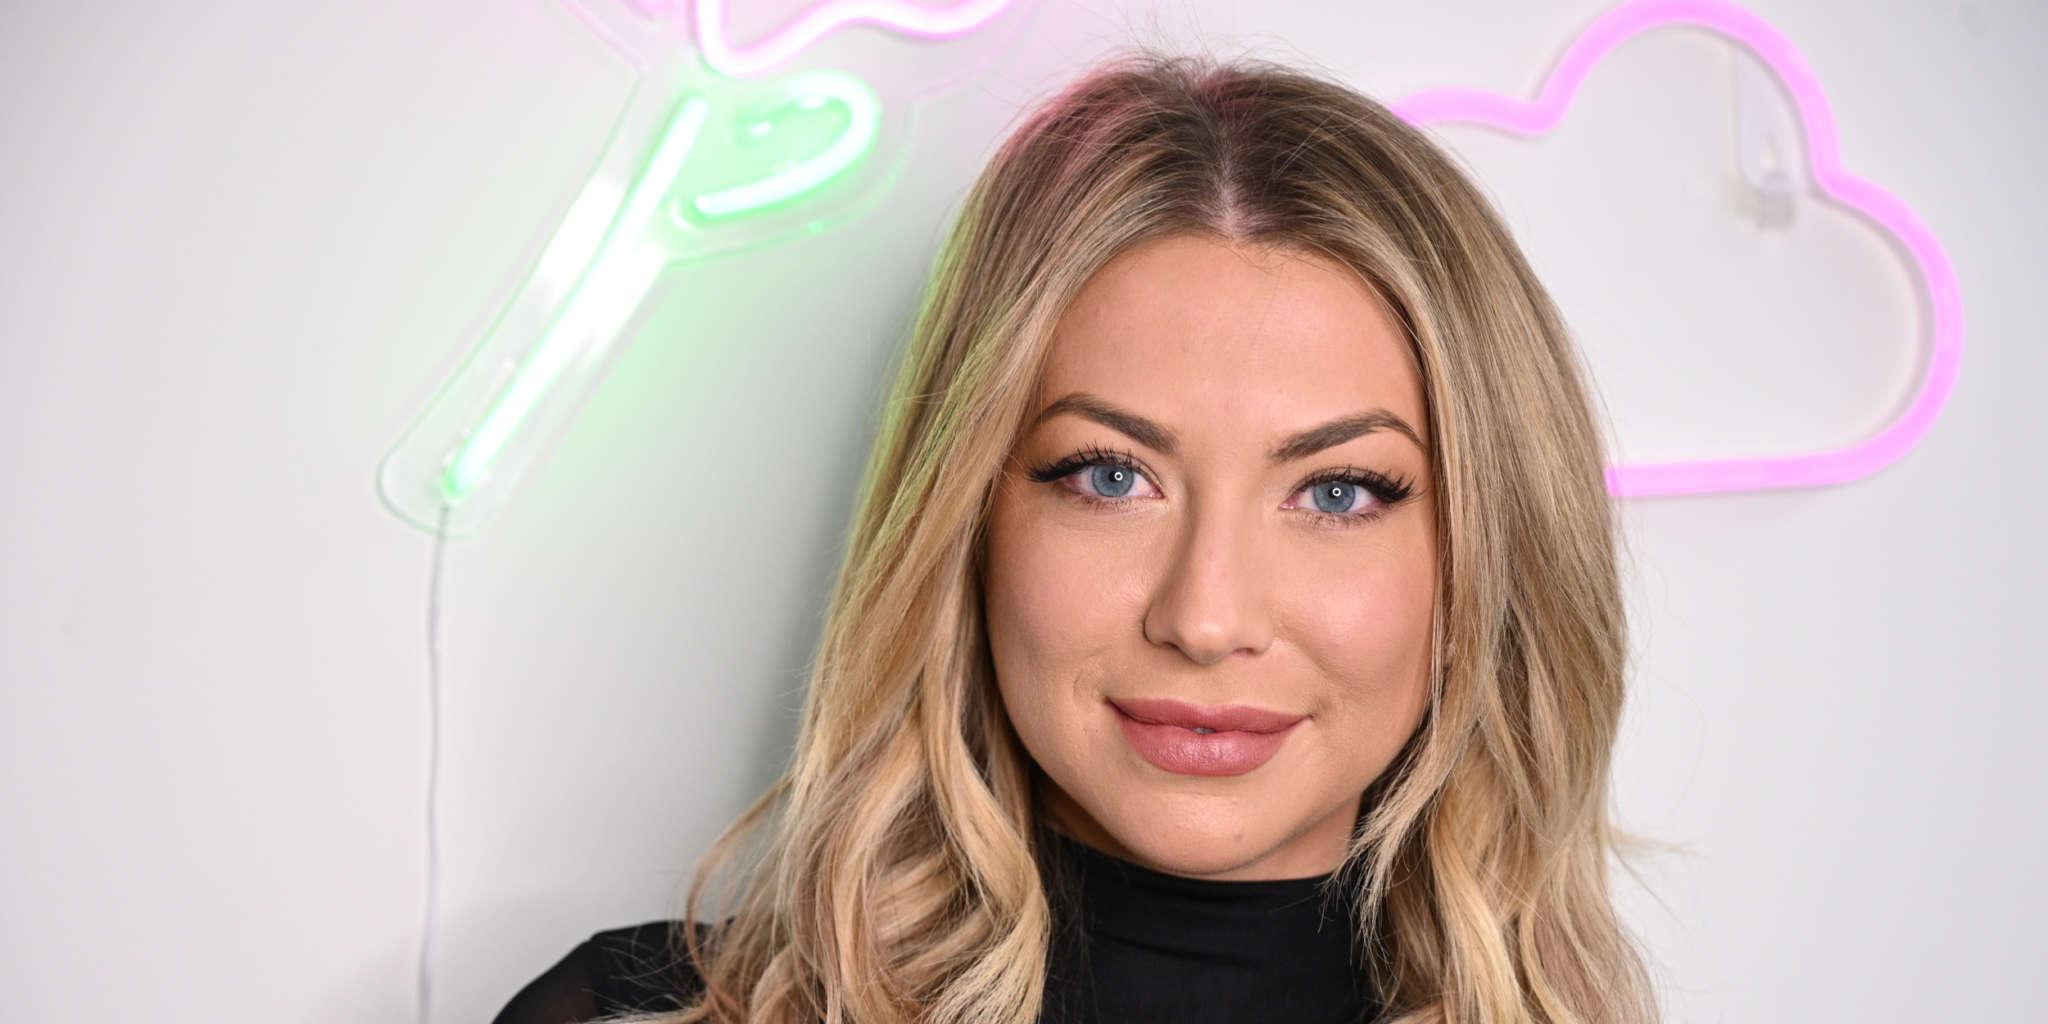 Stassi Schroeder Reportedly Pregnant With Her First Baby!